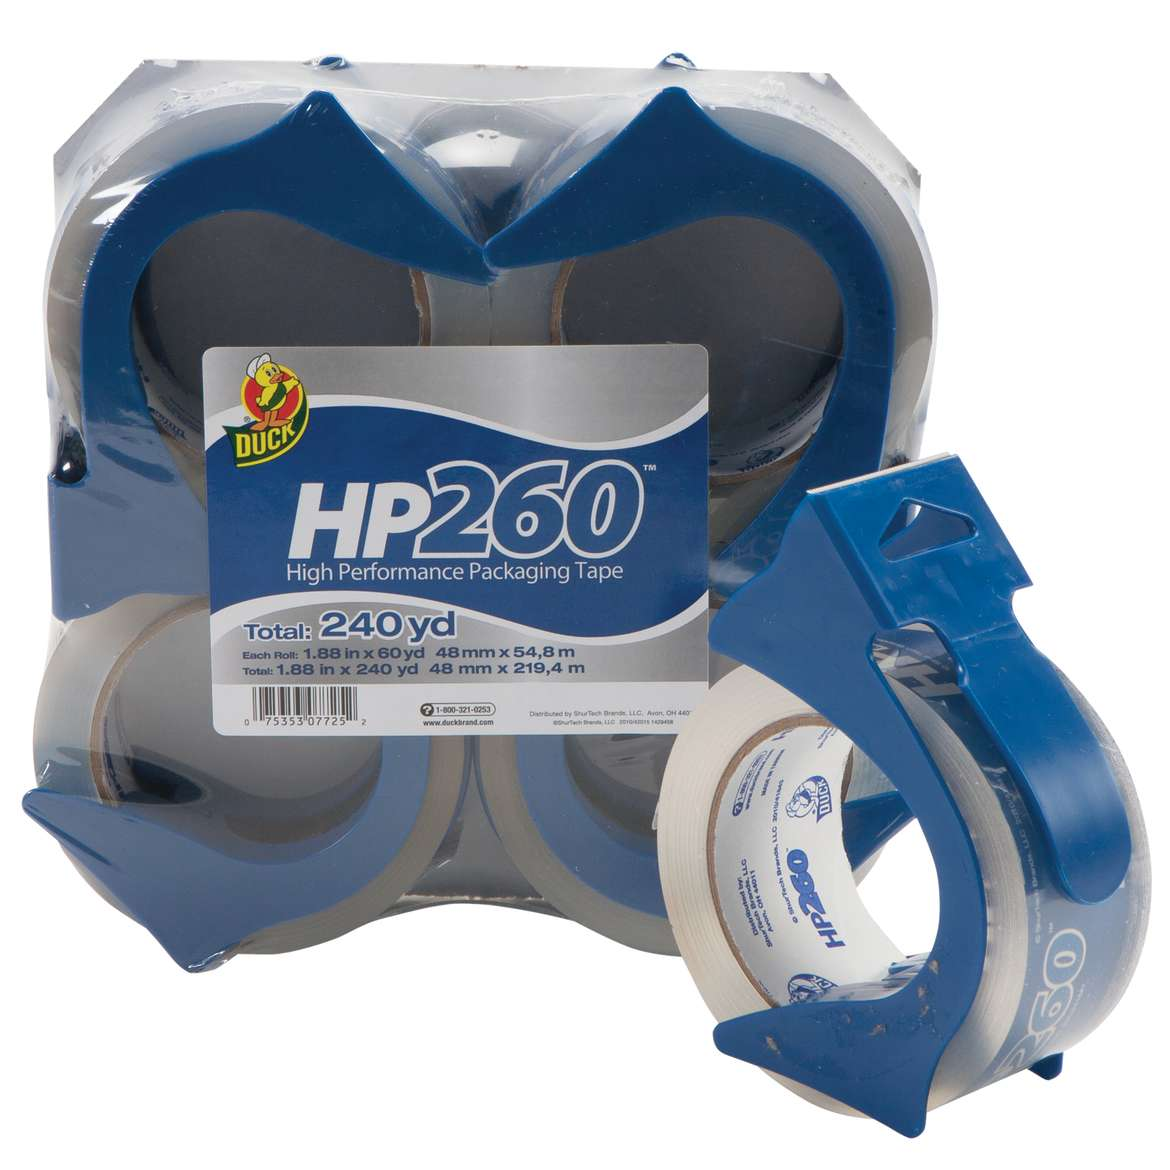 HP260™ Packaging Tape with Dispenser - Clear, 4 pk, 1.88 in. x 60 yd. Image